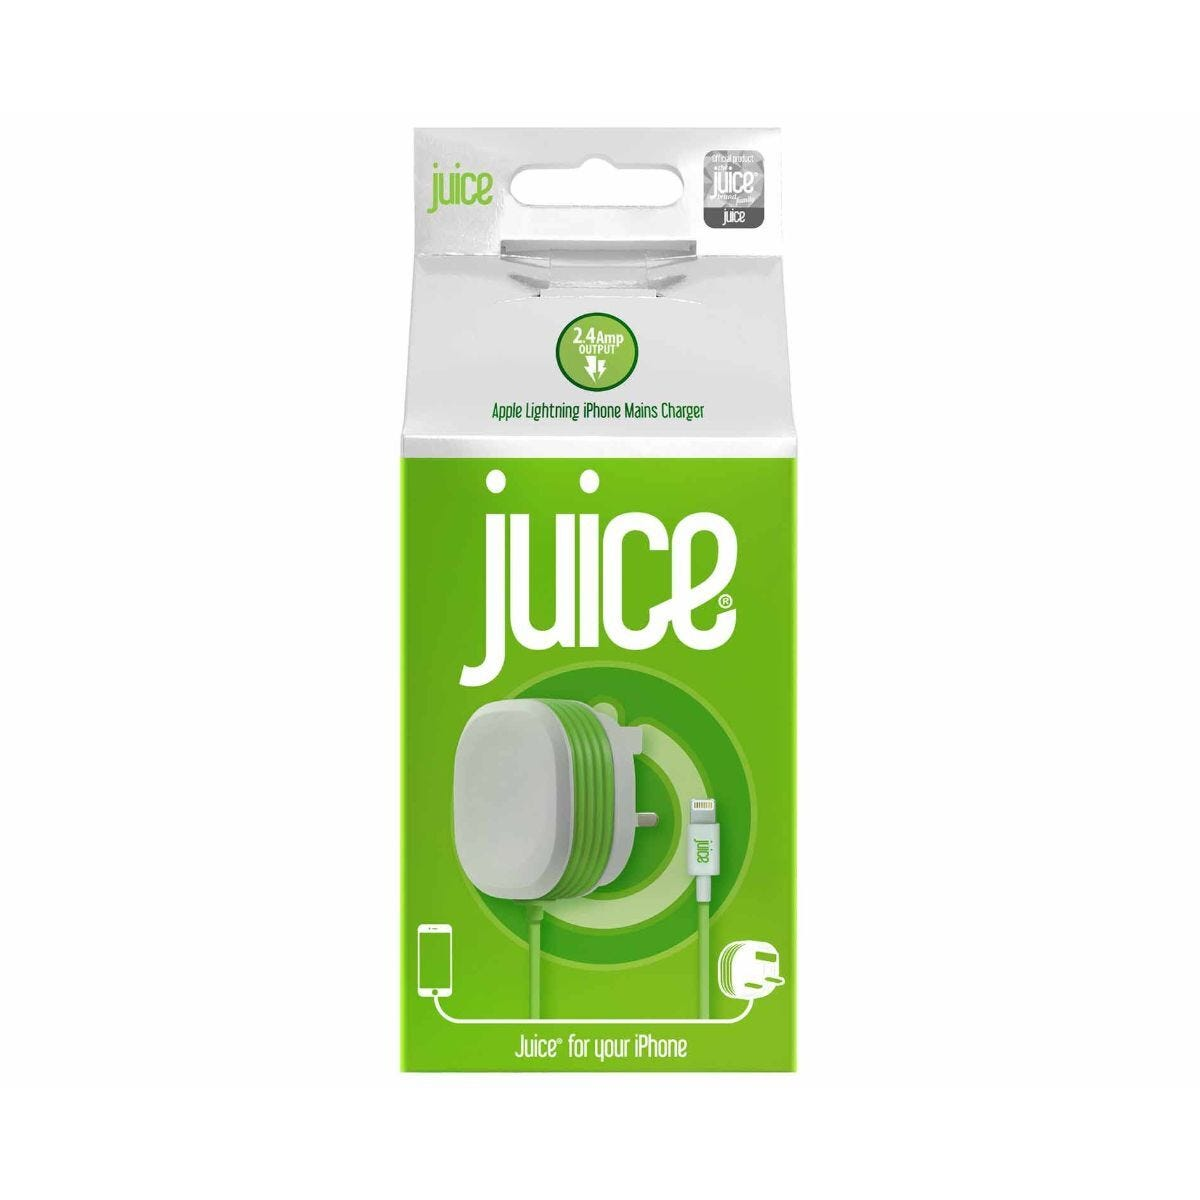 Juice Lightning Mains Charger